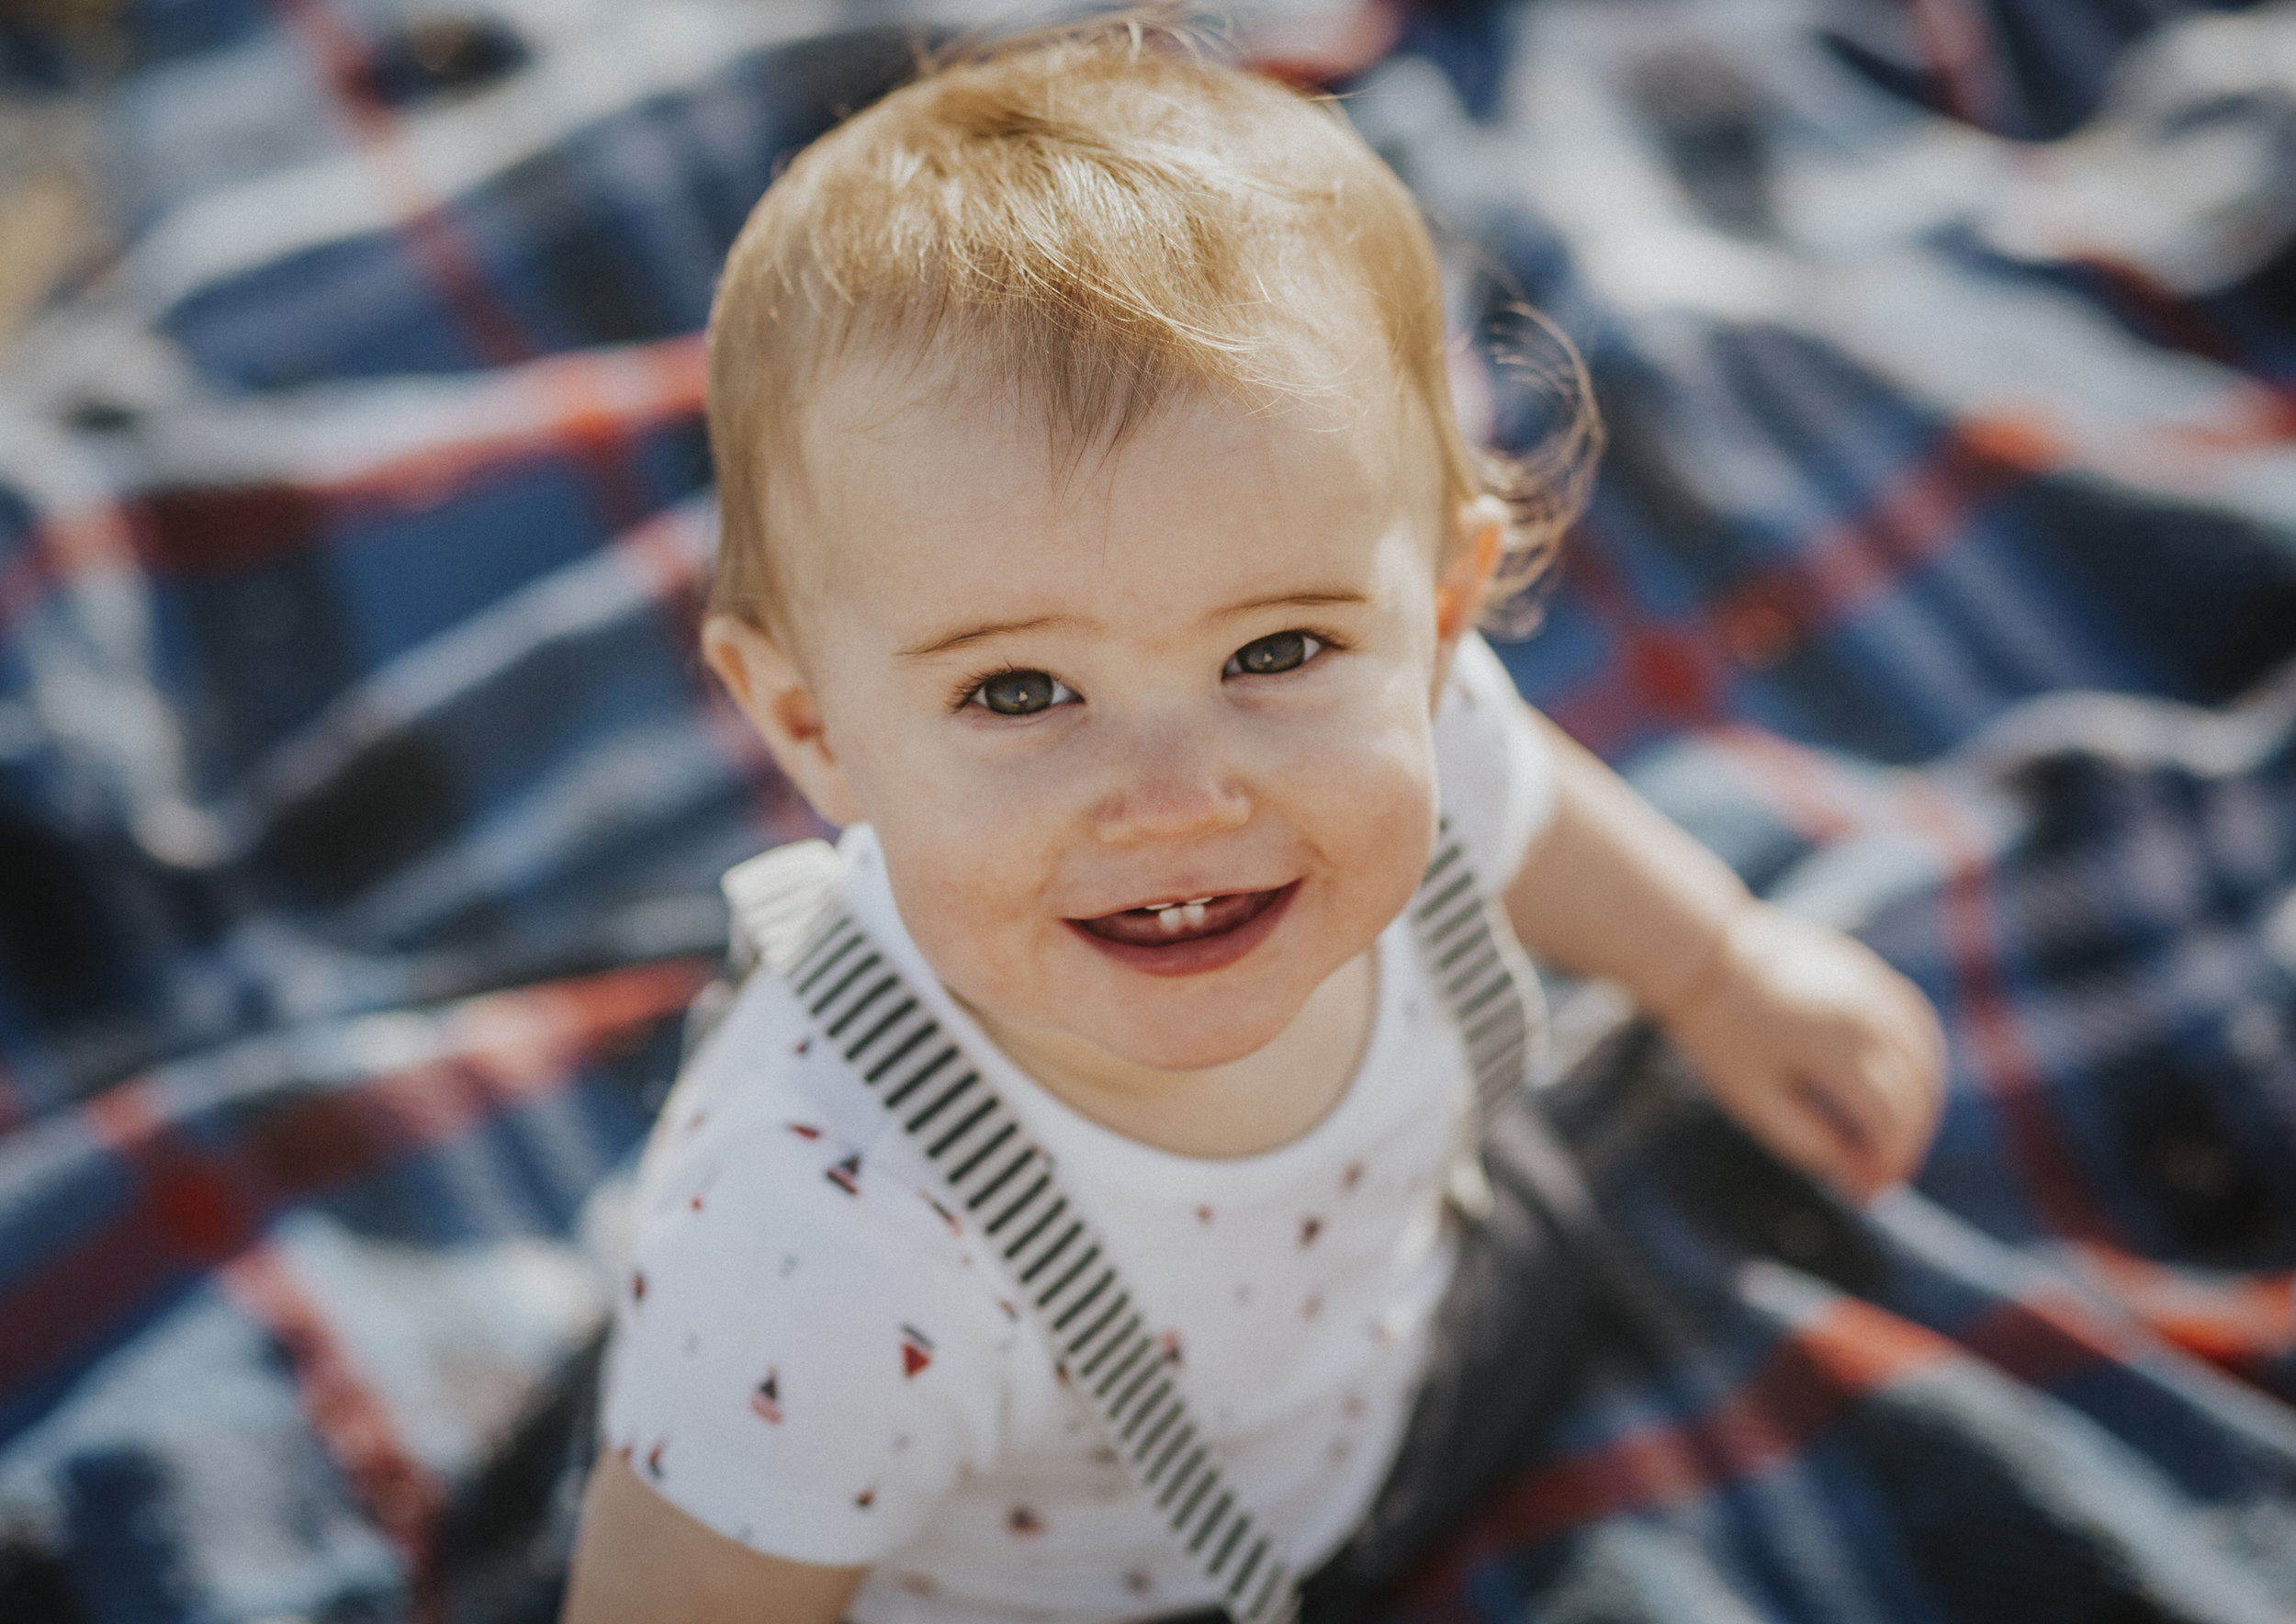 Baby Lifestyle Photography Melbourne